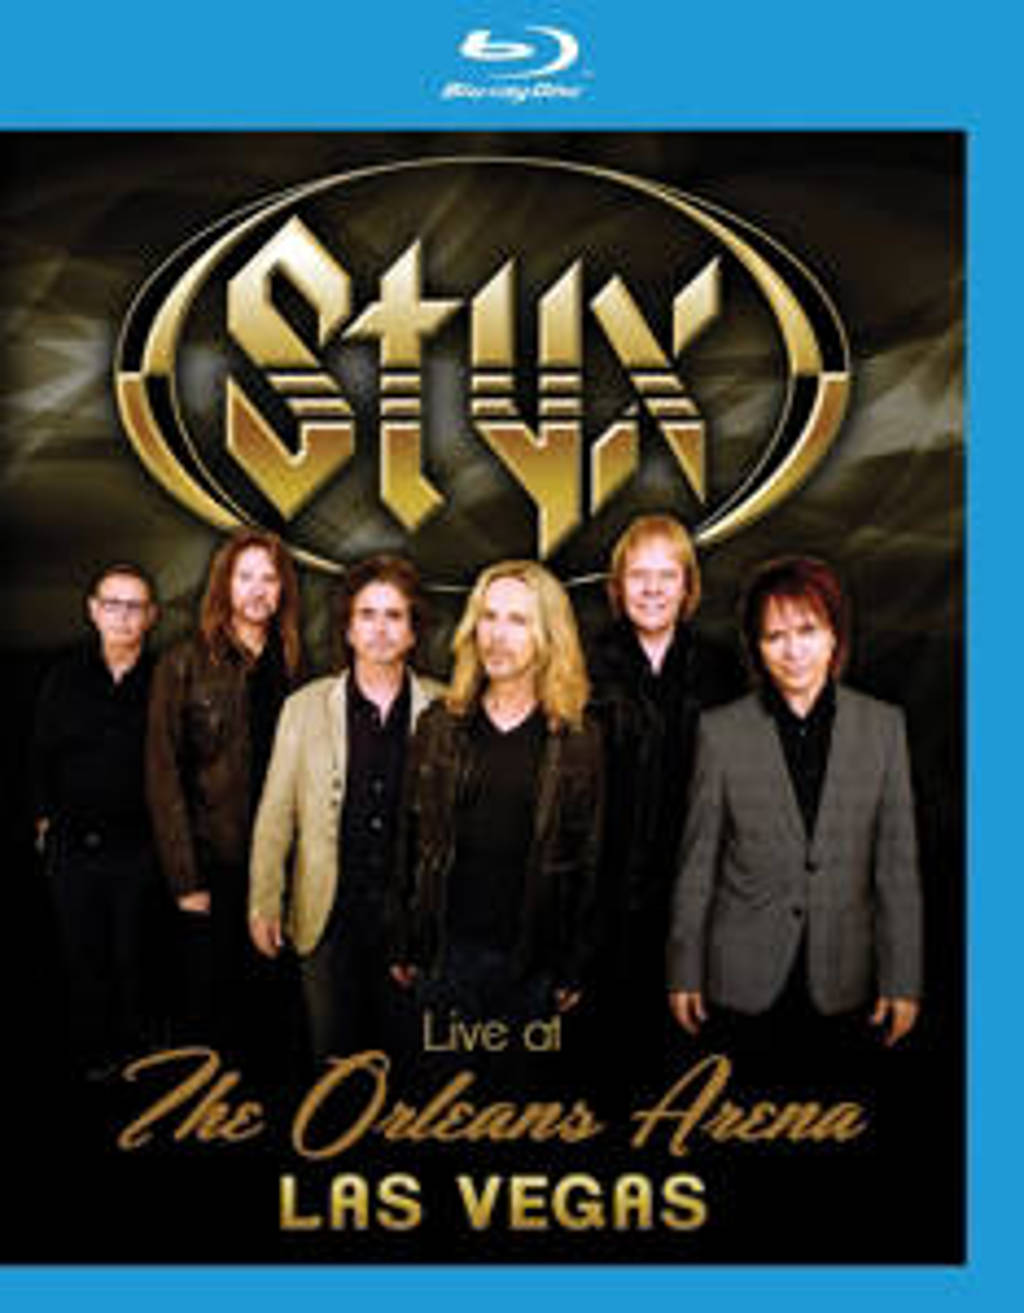 Styx - Live At The Orleans Arena Las Vegas (Blu-ray)